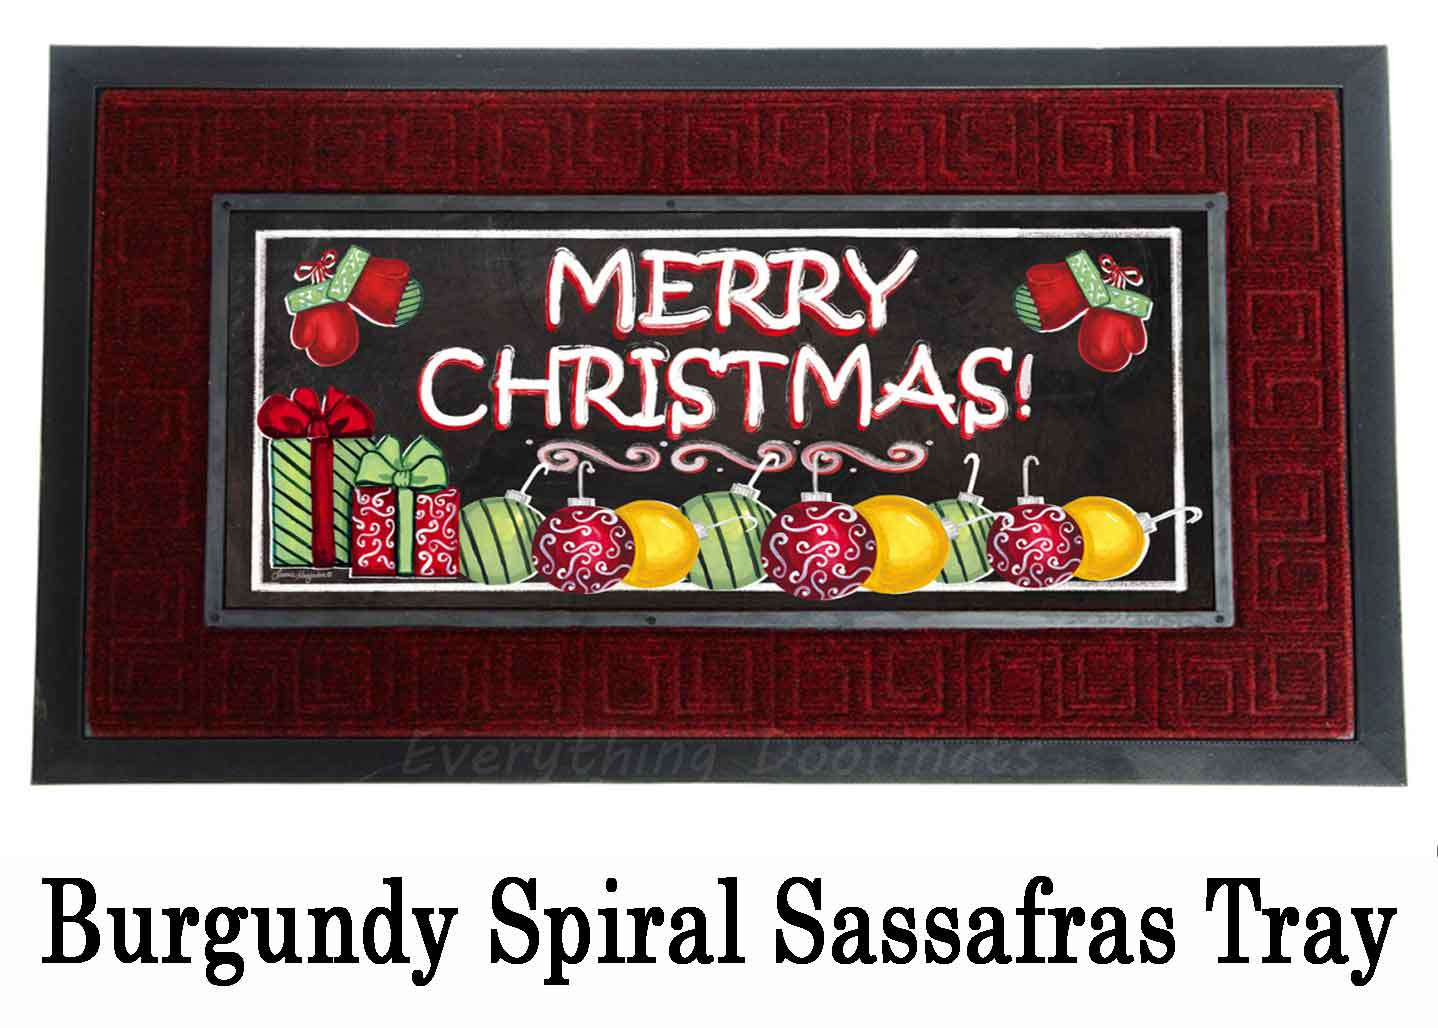 Sassafras Merry Christmas Switch Doormat 10 X 22